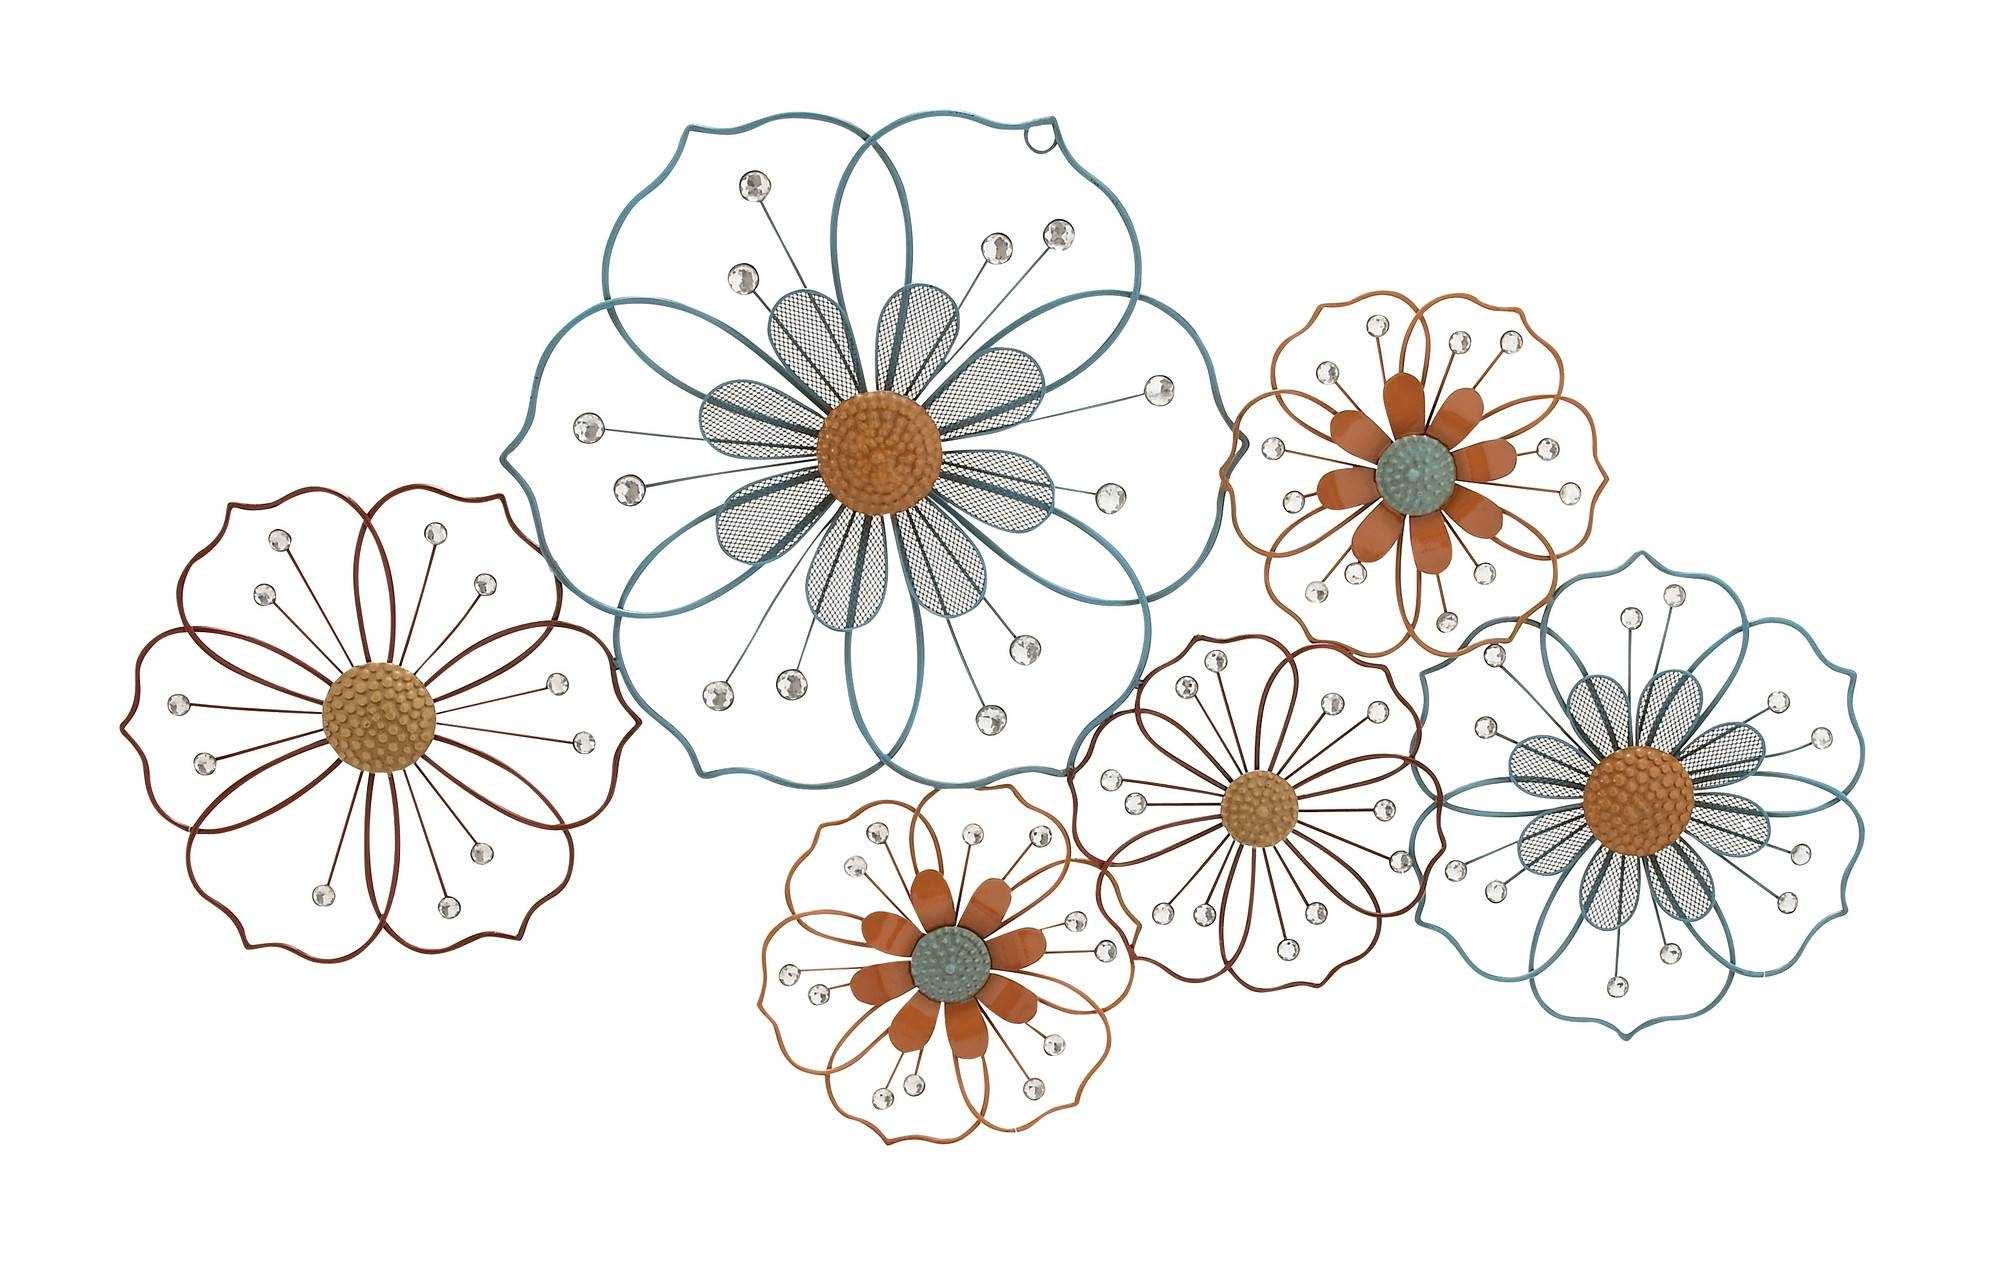 Wall Decor: Flower Silhouettes Floral Large Metal Wall Art Combine Regarding Most Up To Date Tall Metal Wall Art (View 11 of 20)